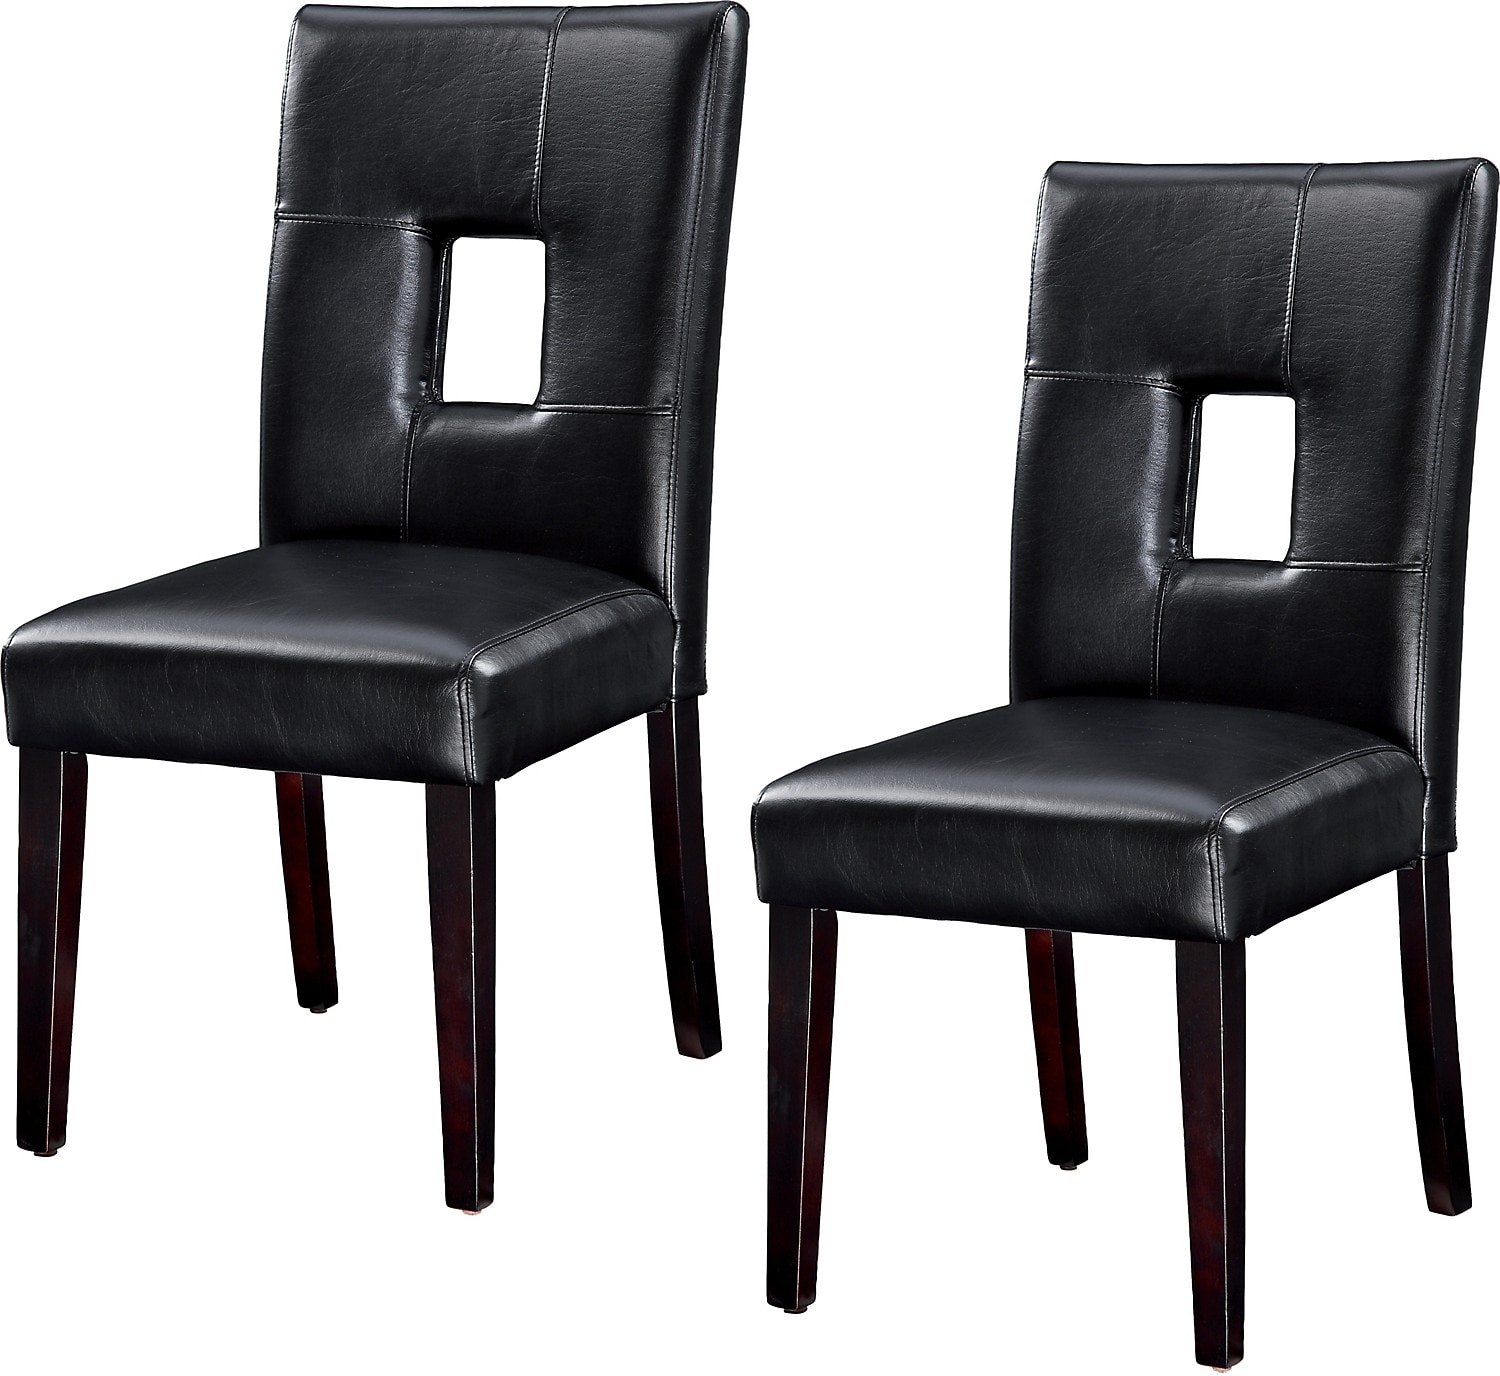 Dining Room Furniture - McKena Faux Leather Dining Chair, Set of 2 – Black